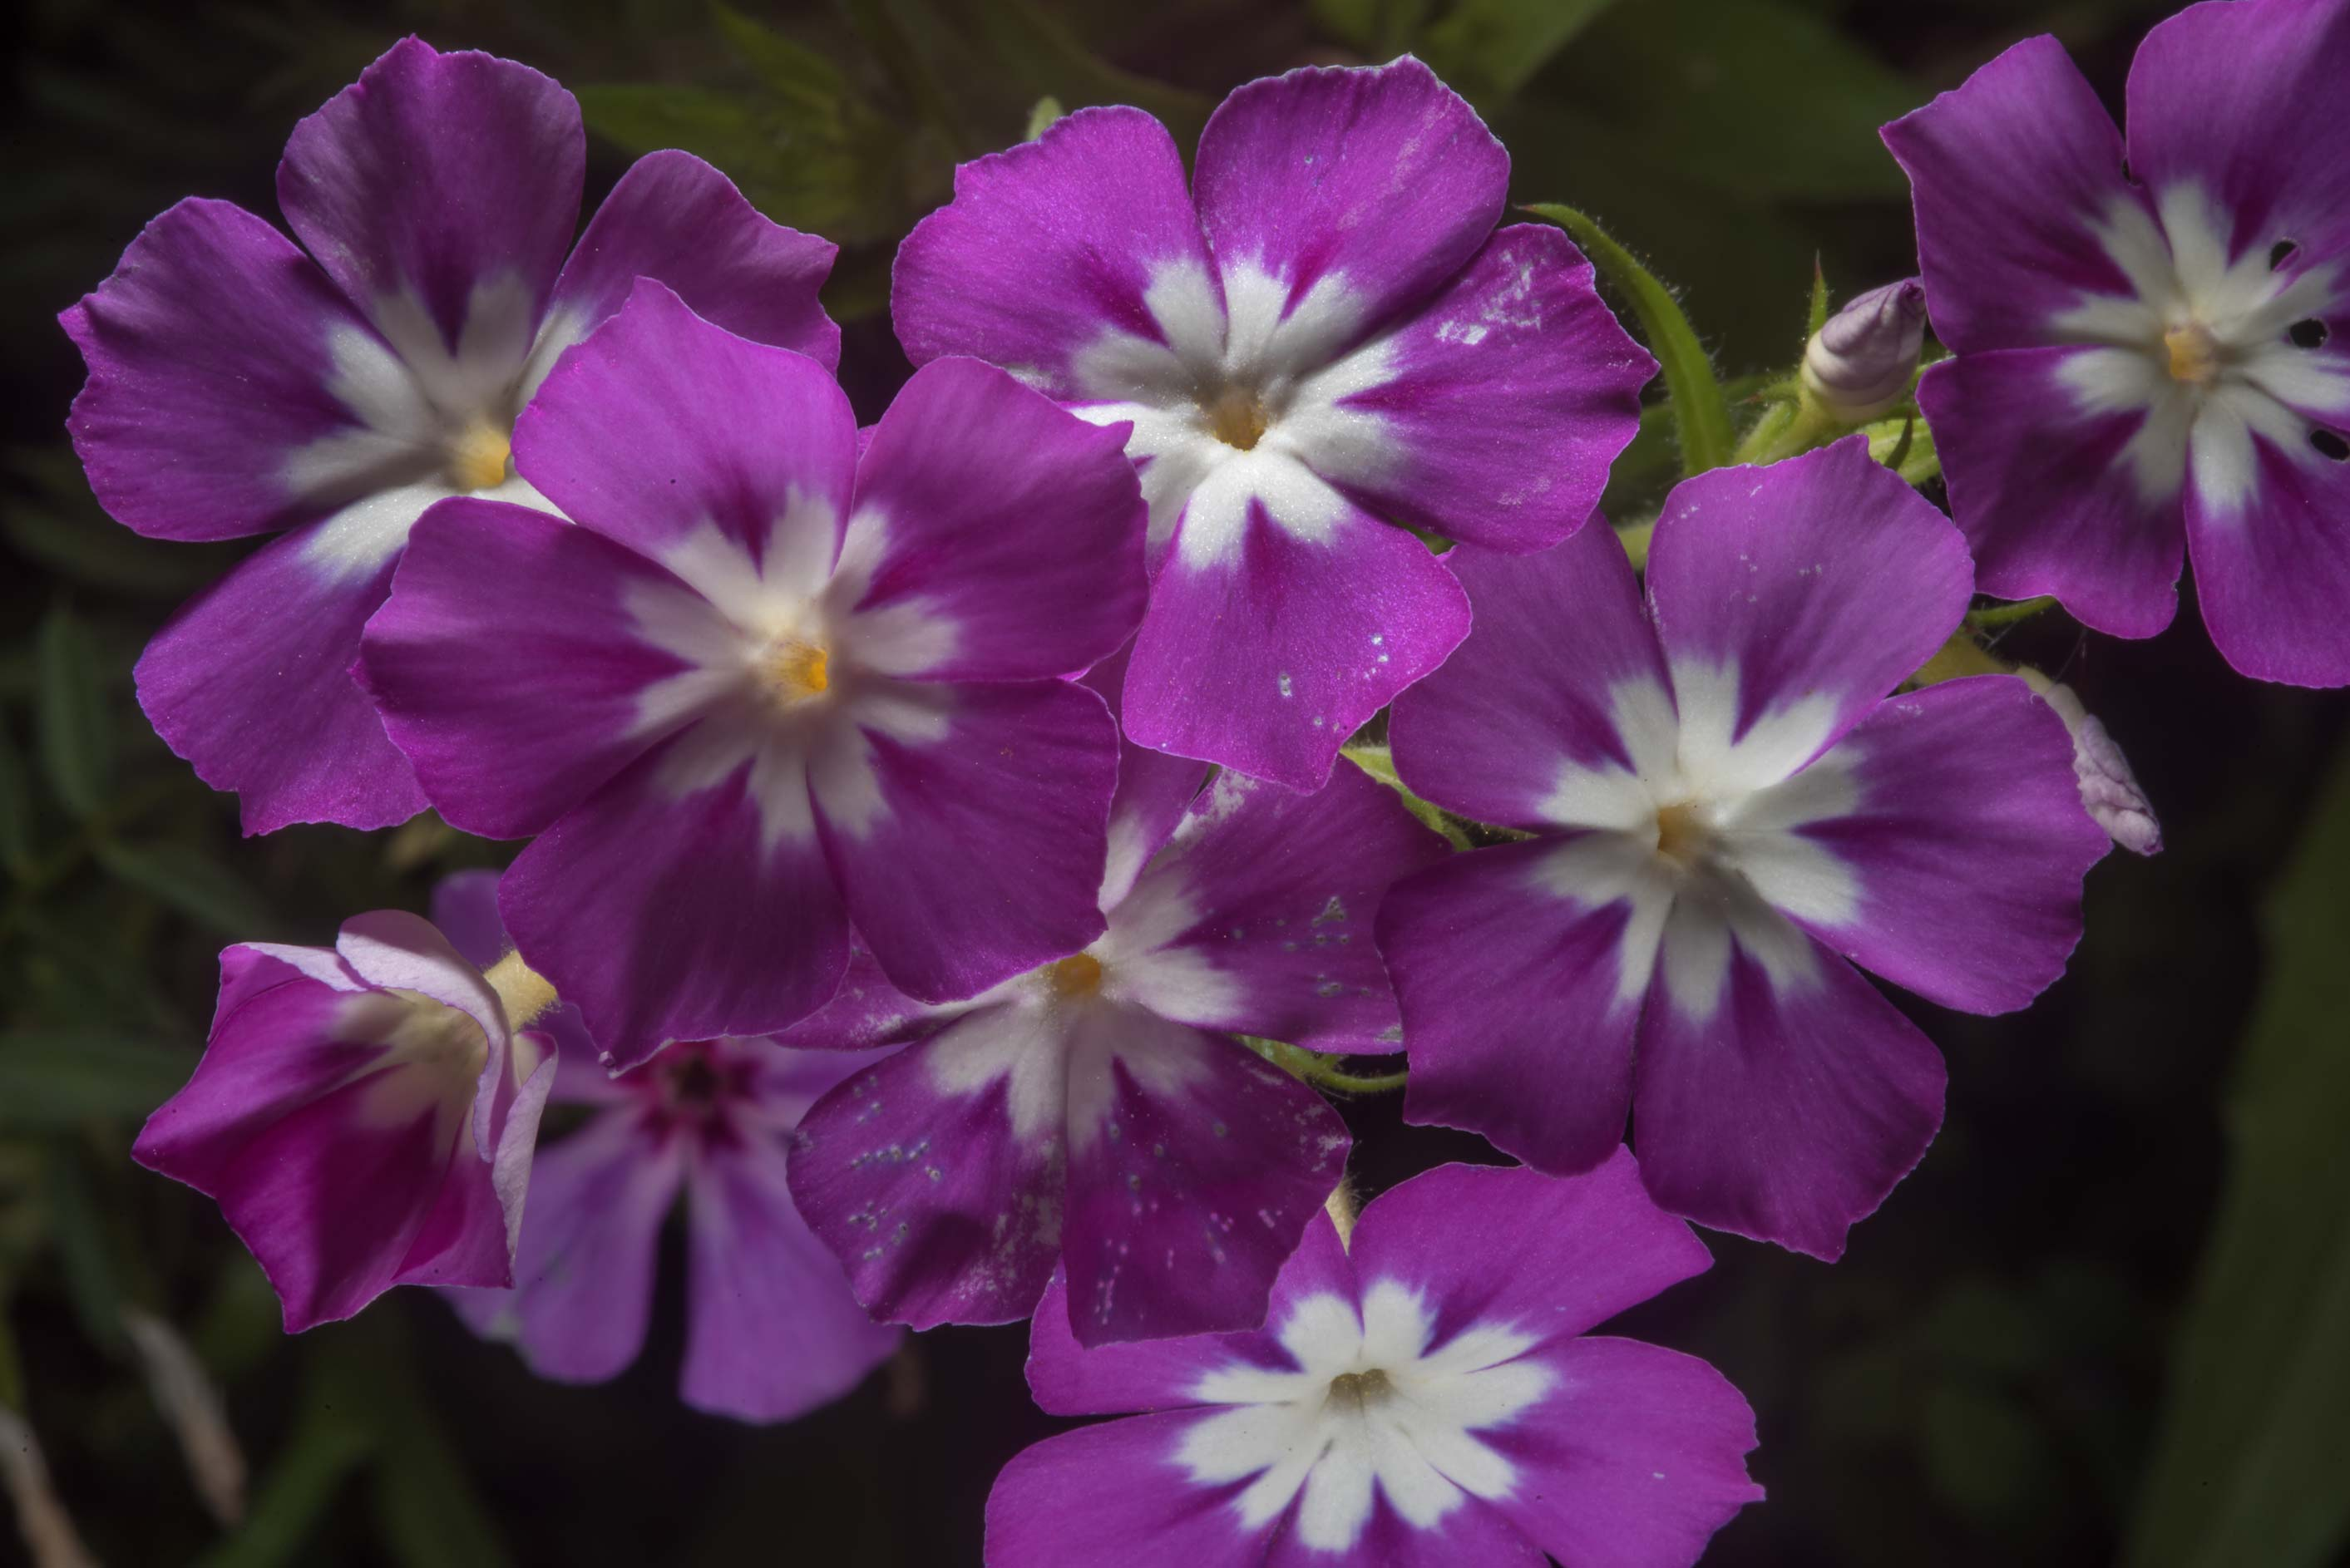 Phlox flowers in Washington-on-the-Brazos State Historic Site. Washington, Texas